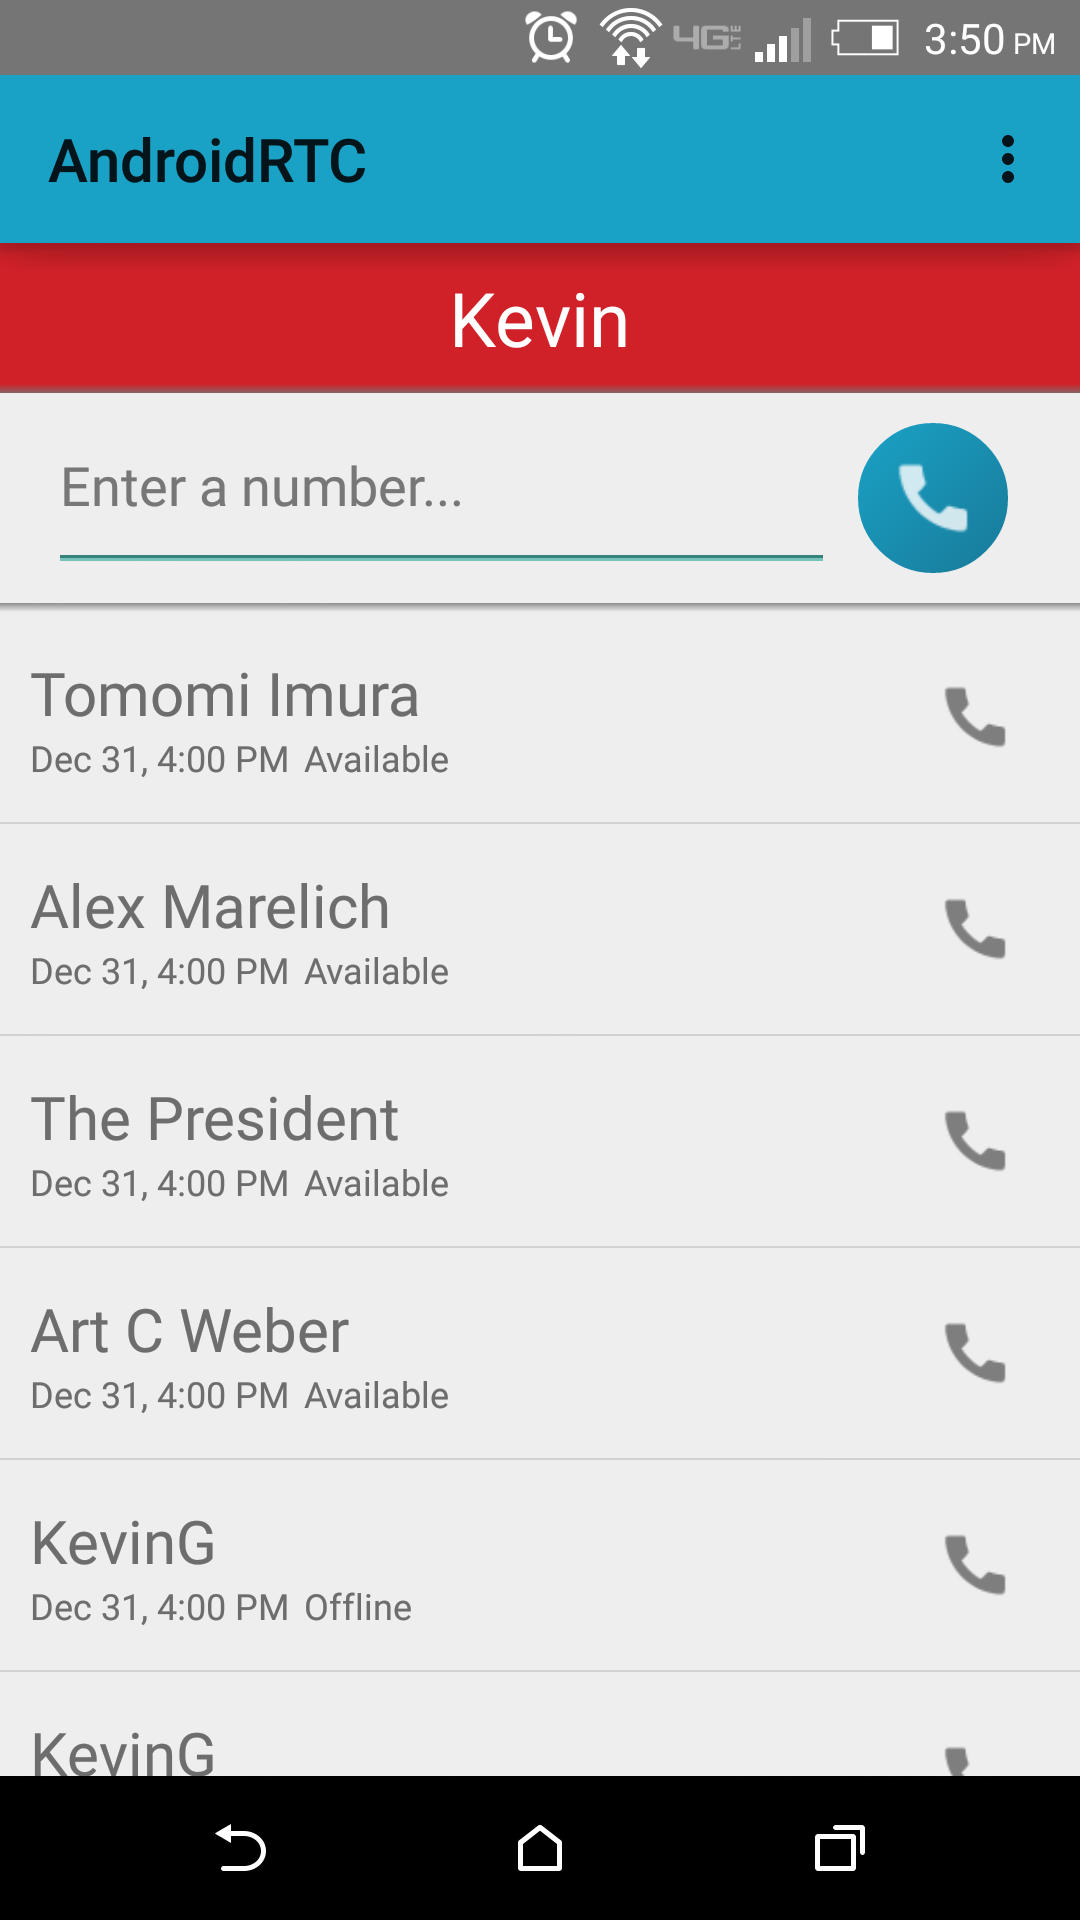 The Video Chat App Android Github {Forum Aden}